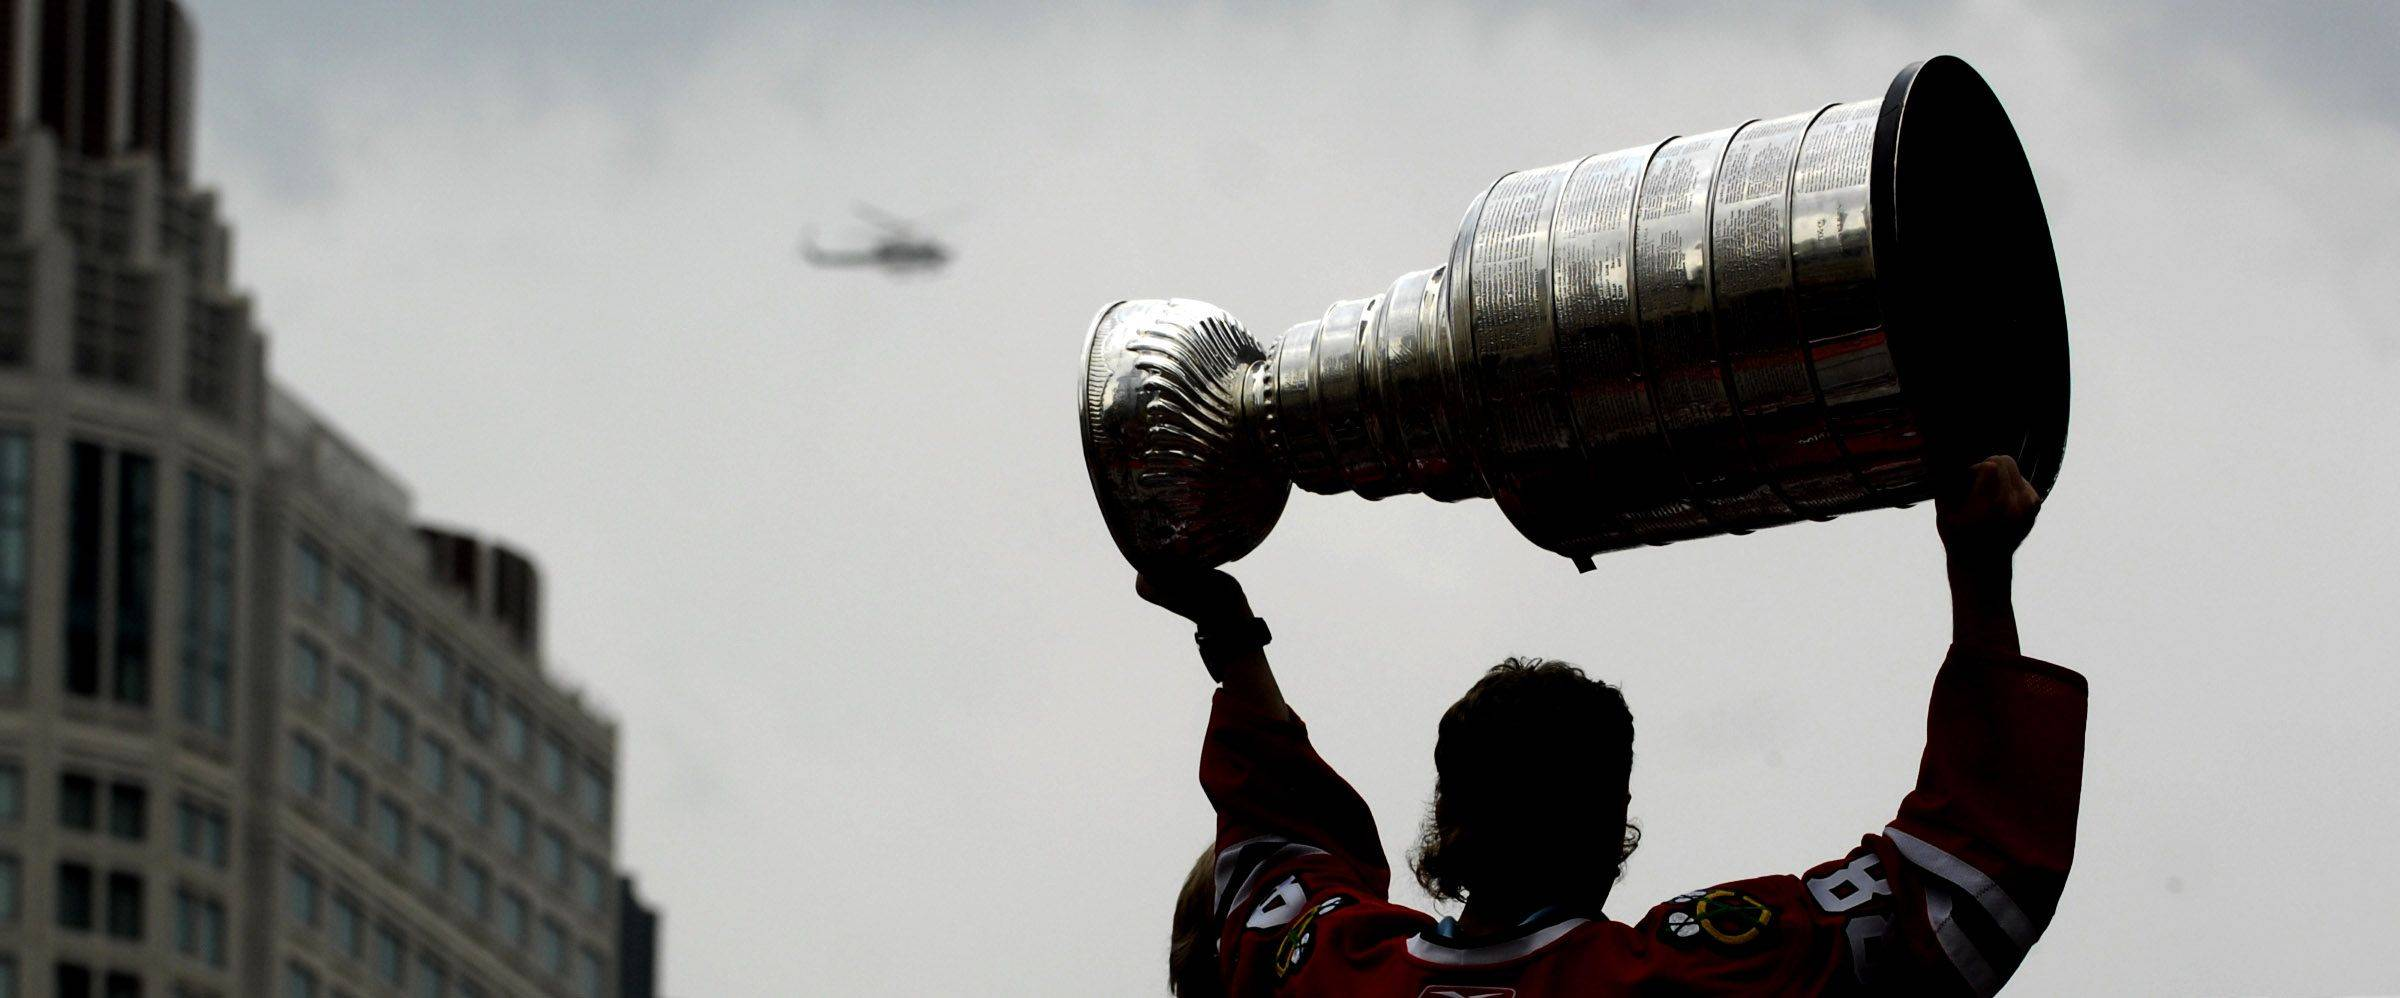 Patrick Kane hoists the Stanley Cup during Friday's victory parade for the Chicago Blackhawks following their Stanley Cup Finals win over Philadelphia.